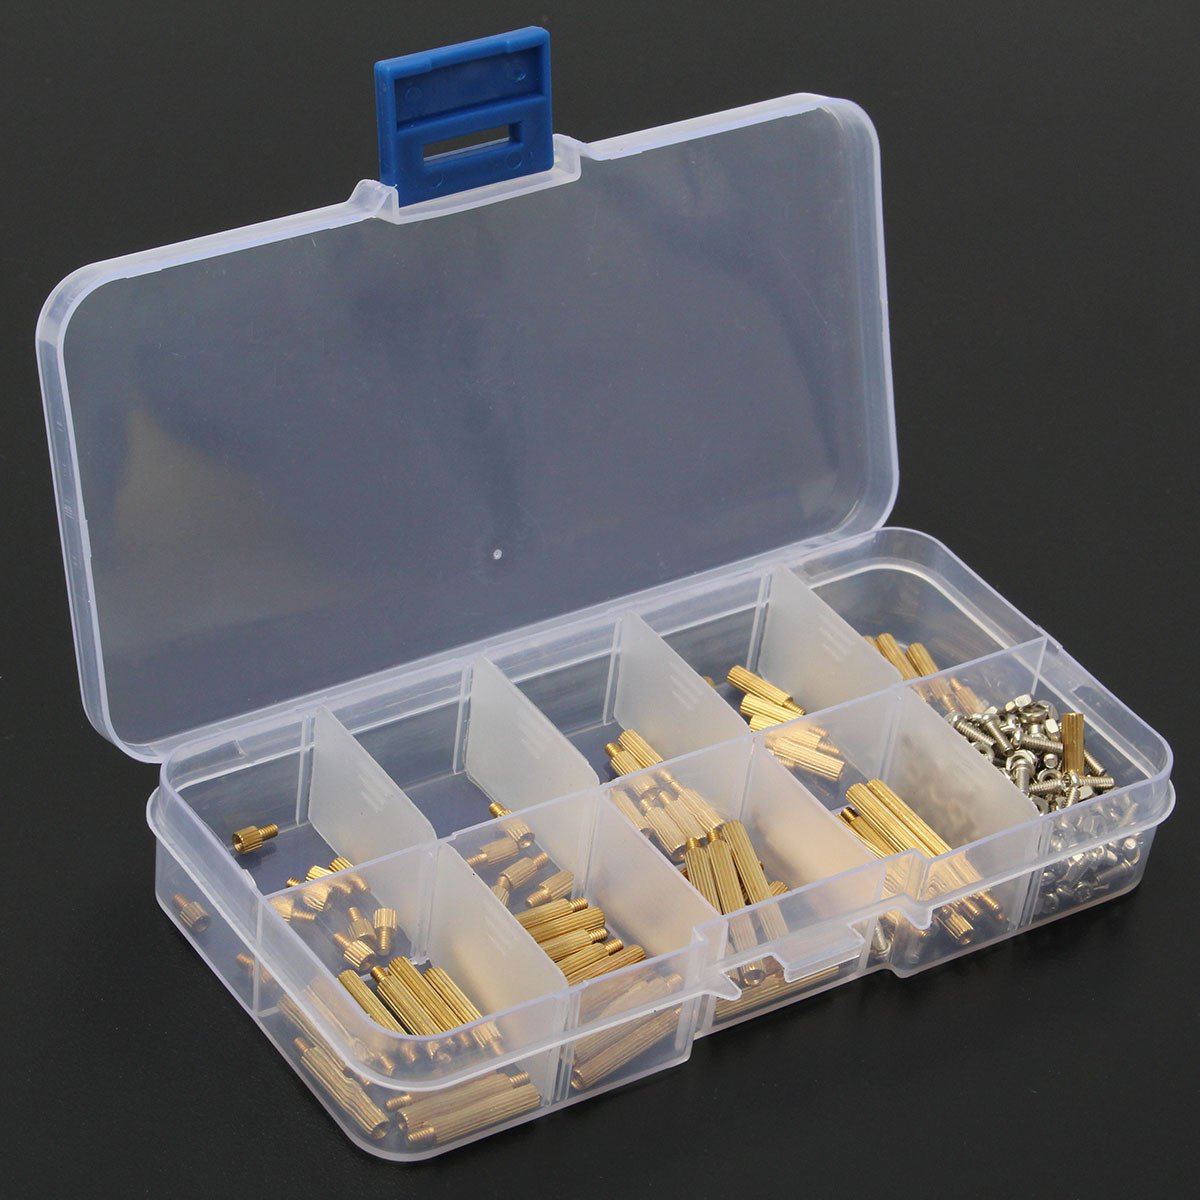 270Pcs <font><b>M2</b></font> Brass PCB Spacer Standoff <font><b>Screw</b></font> Nut Assortment Threaded Standoff Spacer <font><b>Screws</b></font> <font><b>M2x3</b></font>/5/8/10/12/15//18/20/25 Hardware image